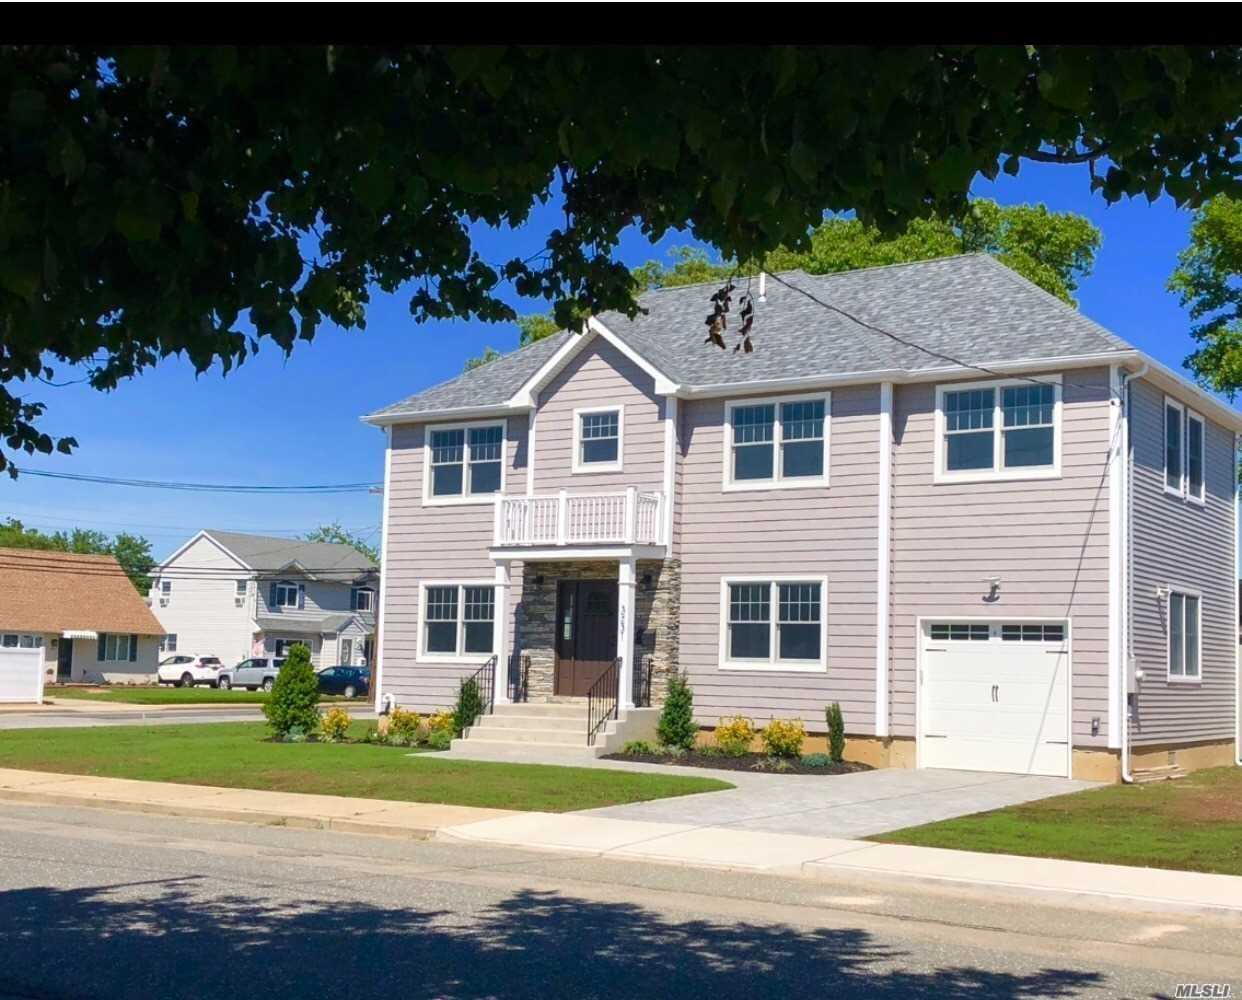 New Beautiful Colonial Offers 4 Lg Bedrooms, 2.5 Baths Beautifully Done, Kitchen W/Granite & Ss Appliances, Fdr, Large Lr, Hw Floors Through Out, Master Suite W/ Walk In Closets & Master Bath, Washer & Dryer On 2nd Floor, 1.5 Car Garage, 2 Zone Central A/C , Gas... Fema Compliant. A Must See!!!